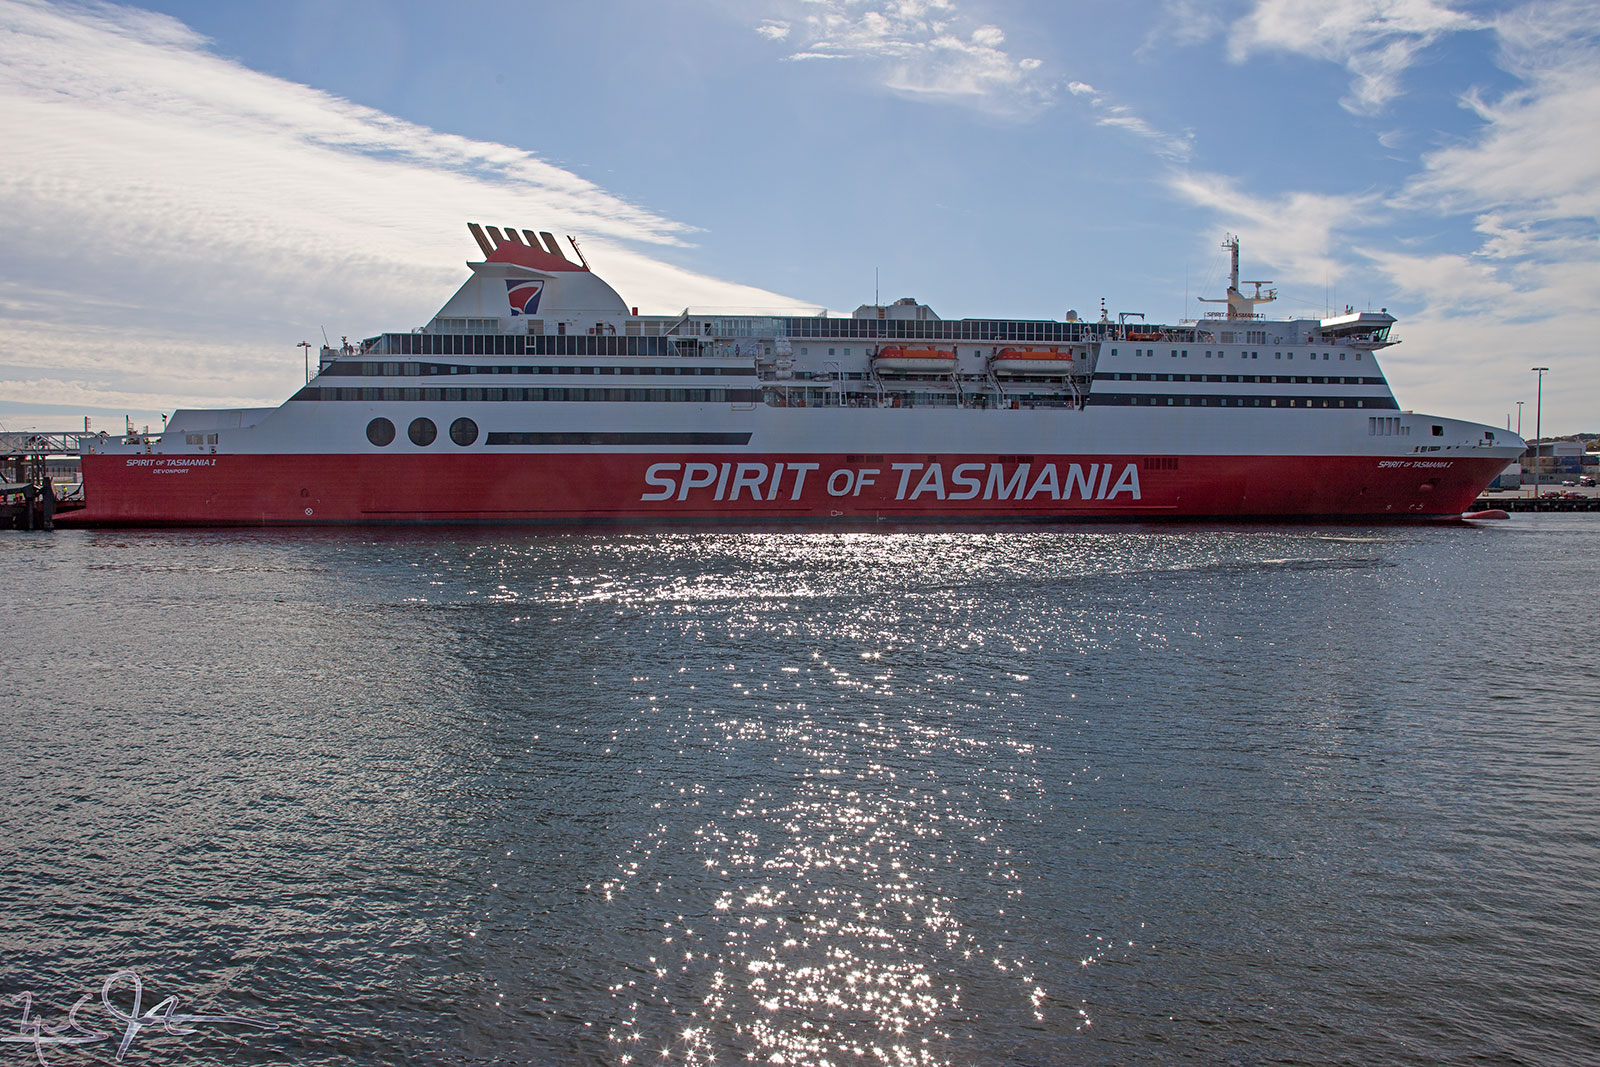 """Spirit of Tasmania II"" alongside the pier after arriving in Devonport."